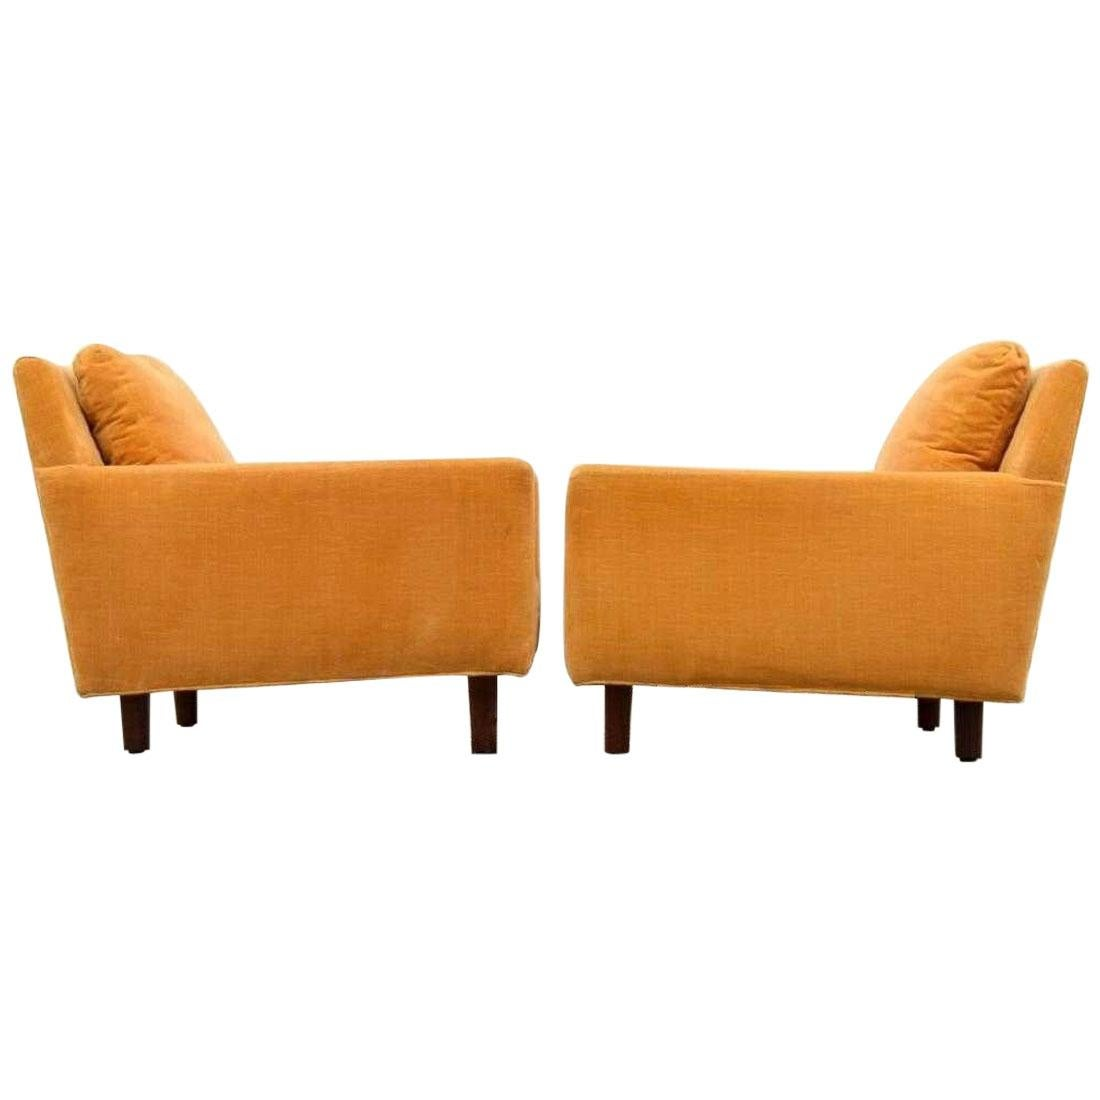 Pair of Lounge Chairs by Milo Baughman